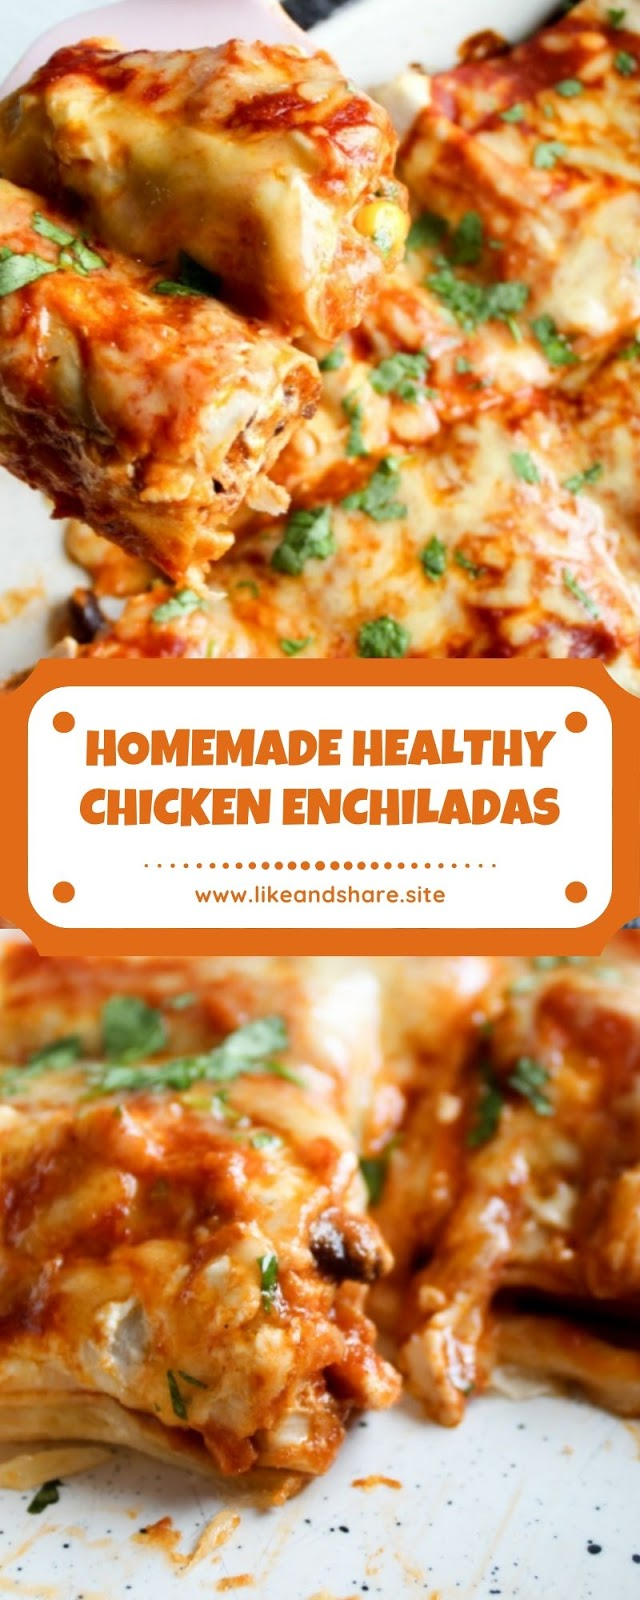 HOMEMADE HEALTHY CHICKEN ENCHILADAS